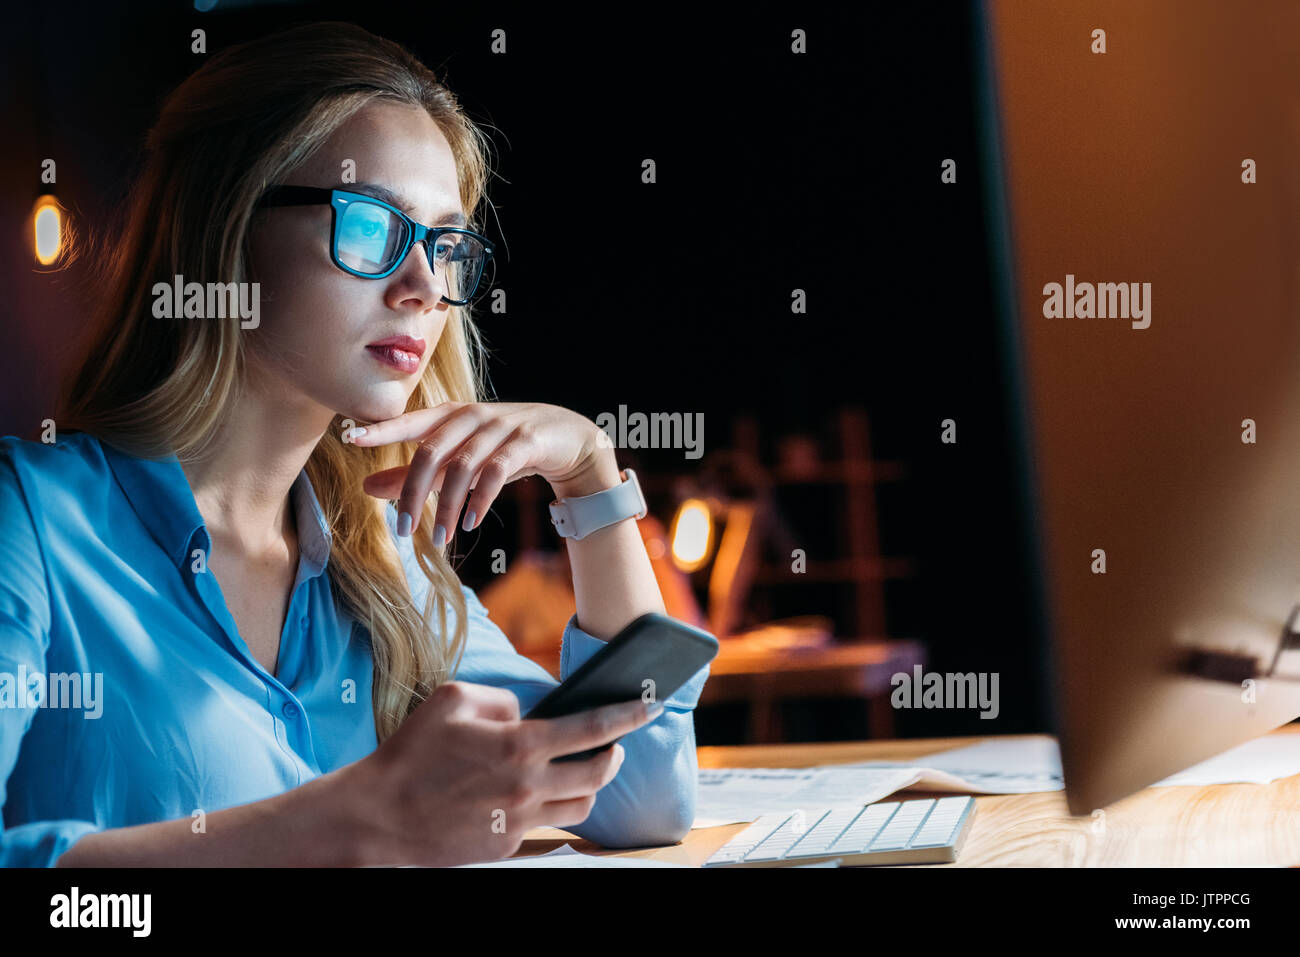 portrait of businesswoman using smartphone while working late in office - Stock Image